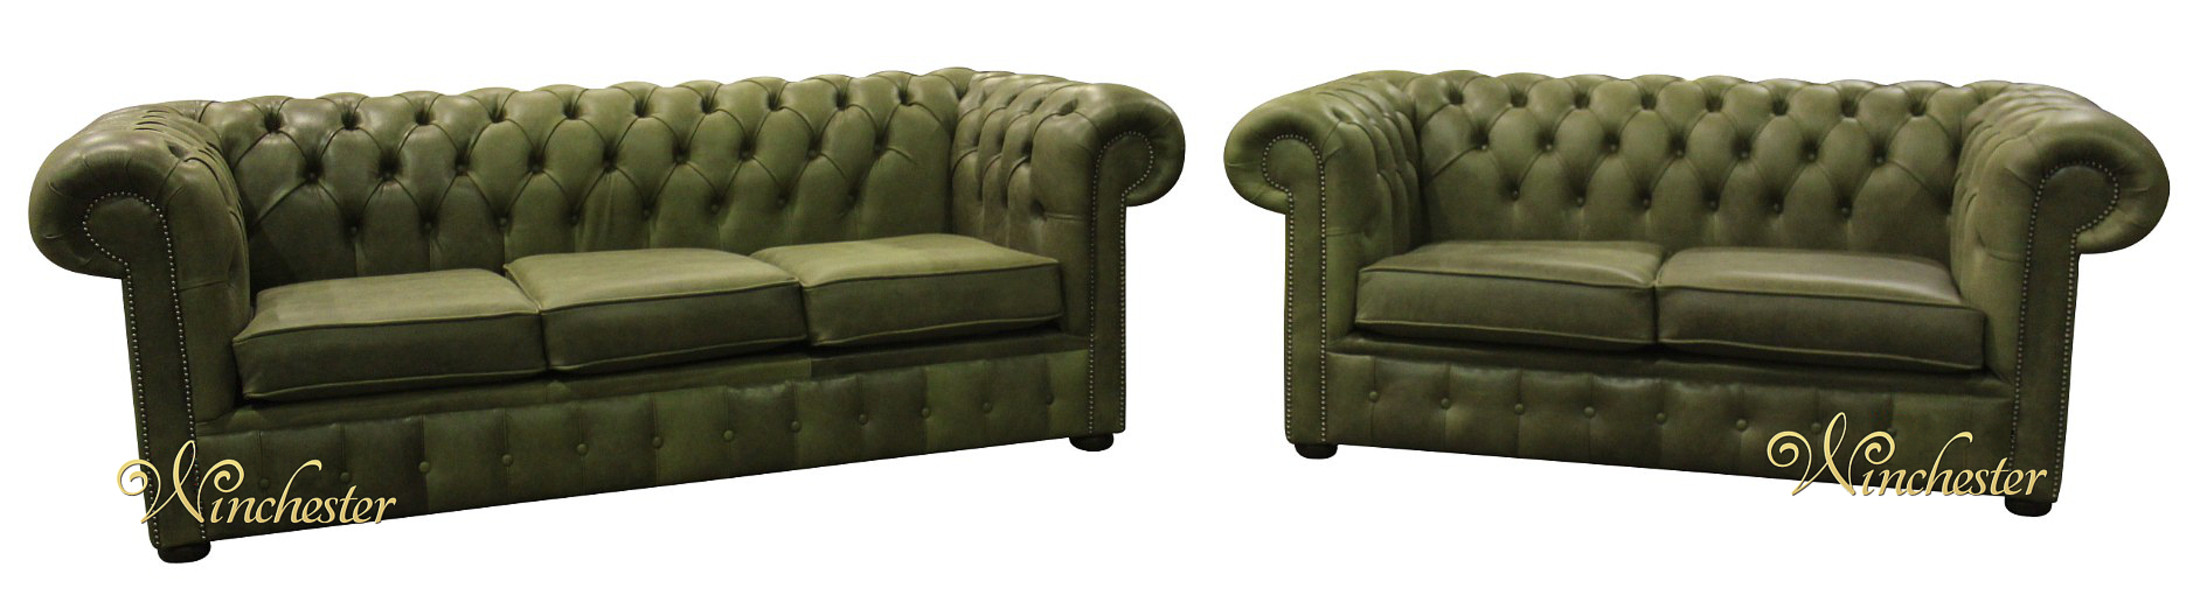 sage leather sofa wooden chair images chesterfield suite 3 2 seater settee selvaggio green wc